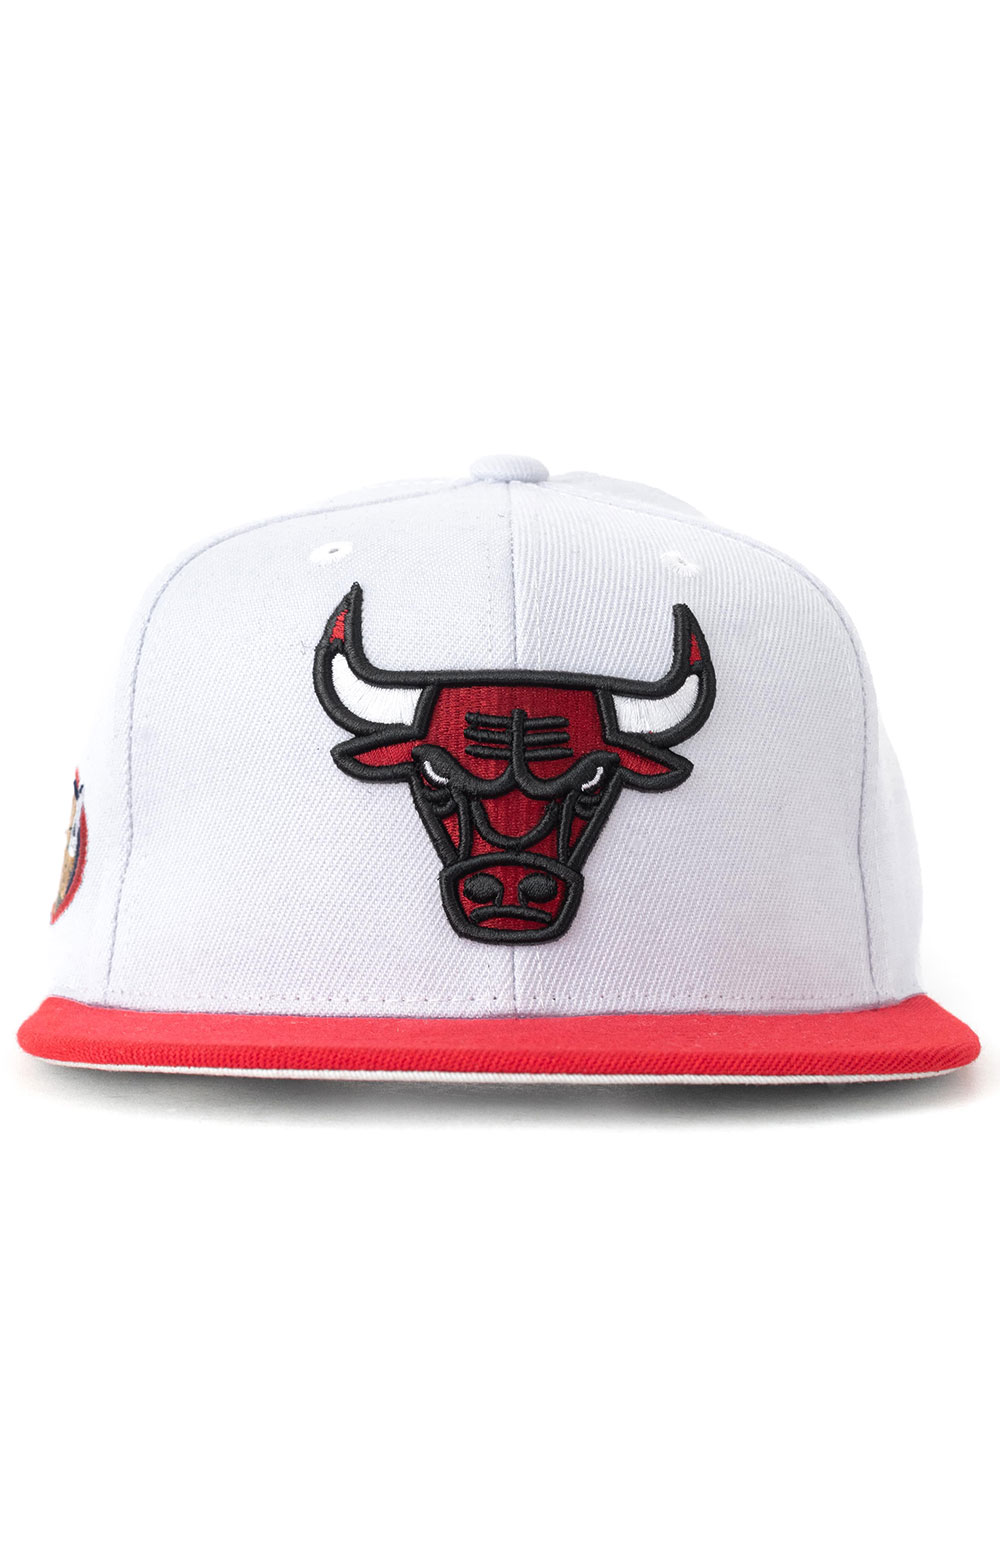 NBA Finals Patch Snap-Back Hat HWC Bulls 1998 - White/Red 3